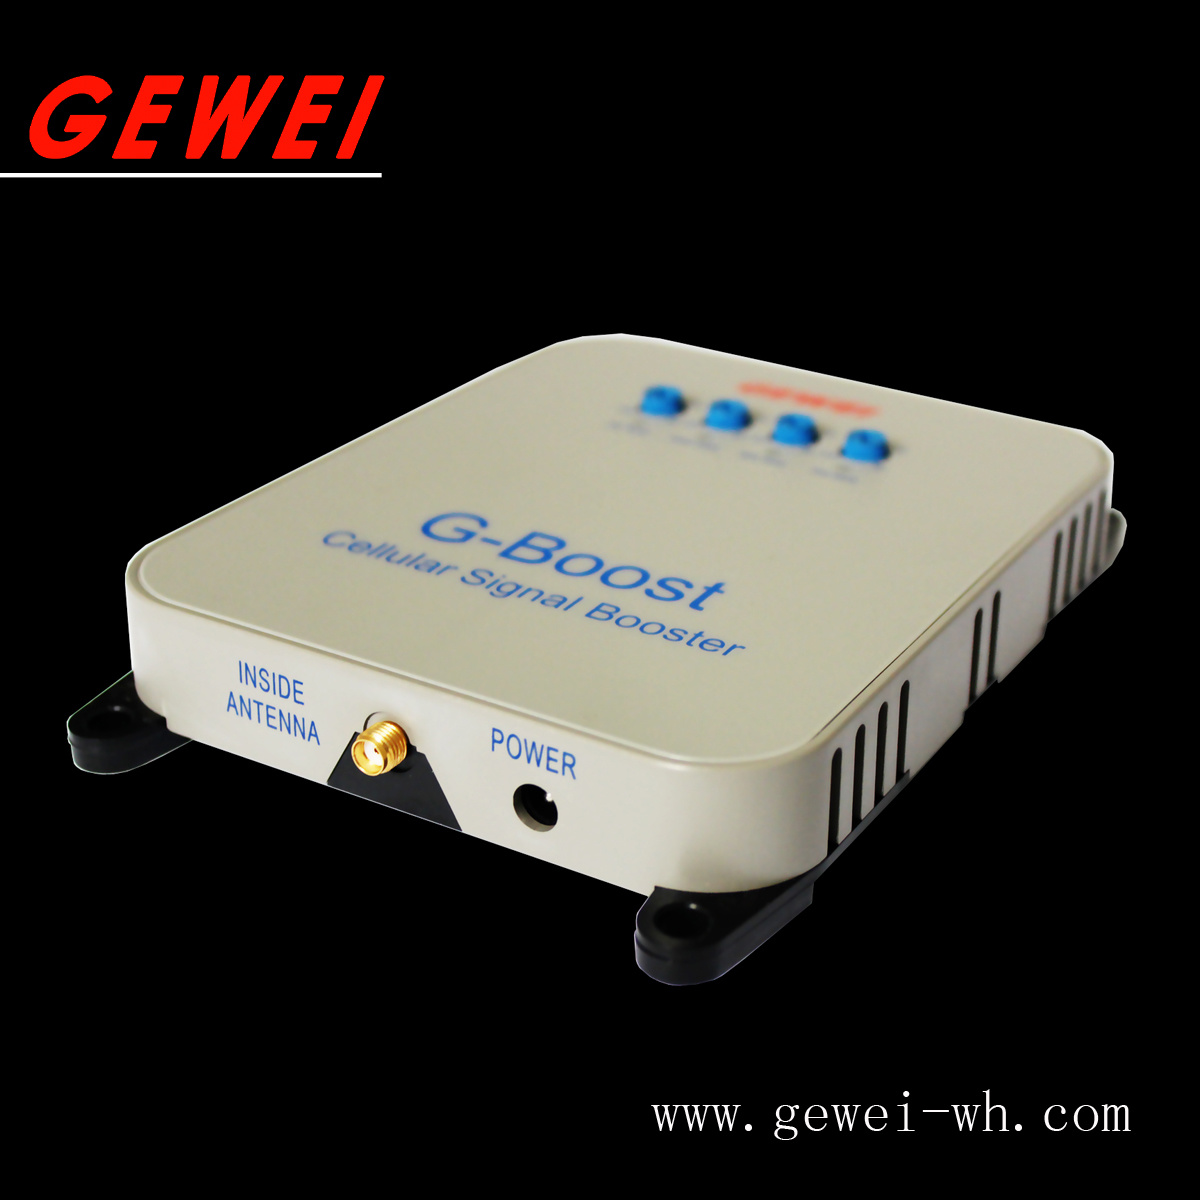 Mobile Phone Signal Booster 2g 3G 4G with Antenna for Indoor Using